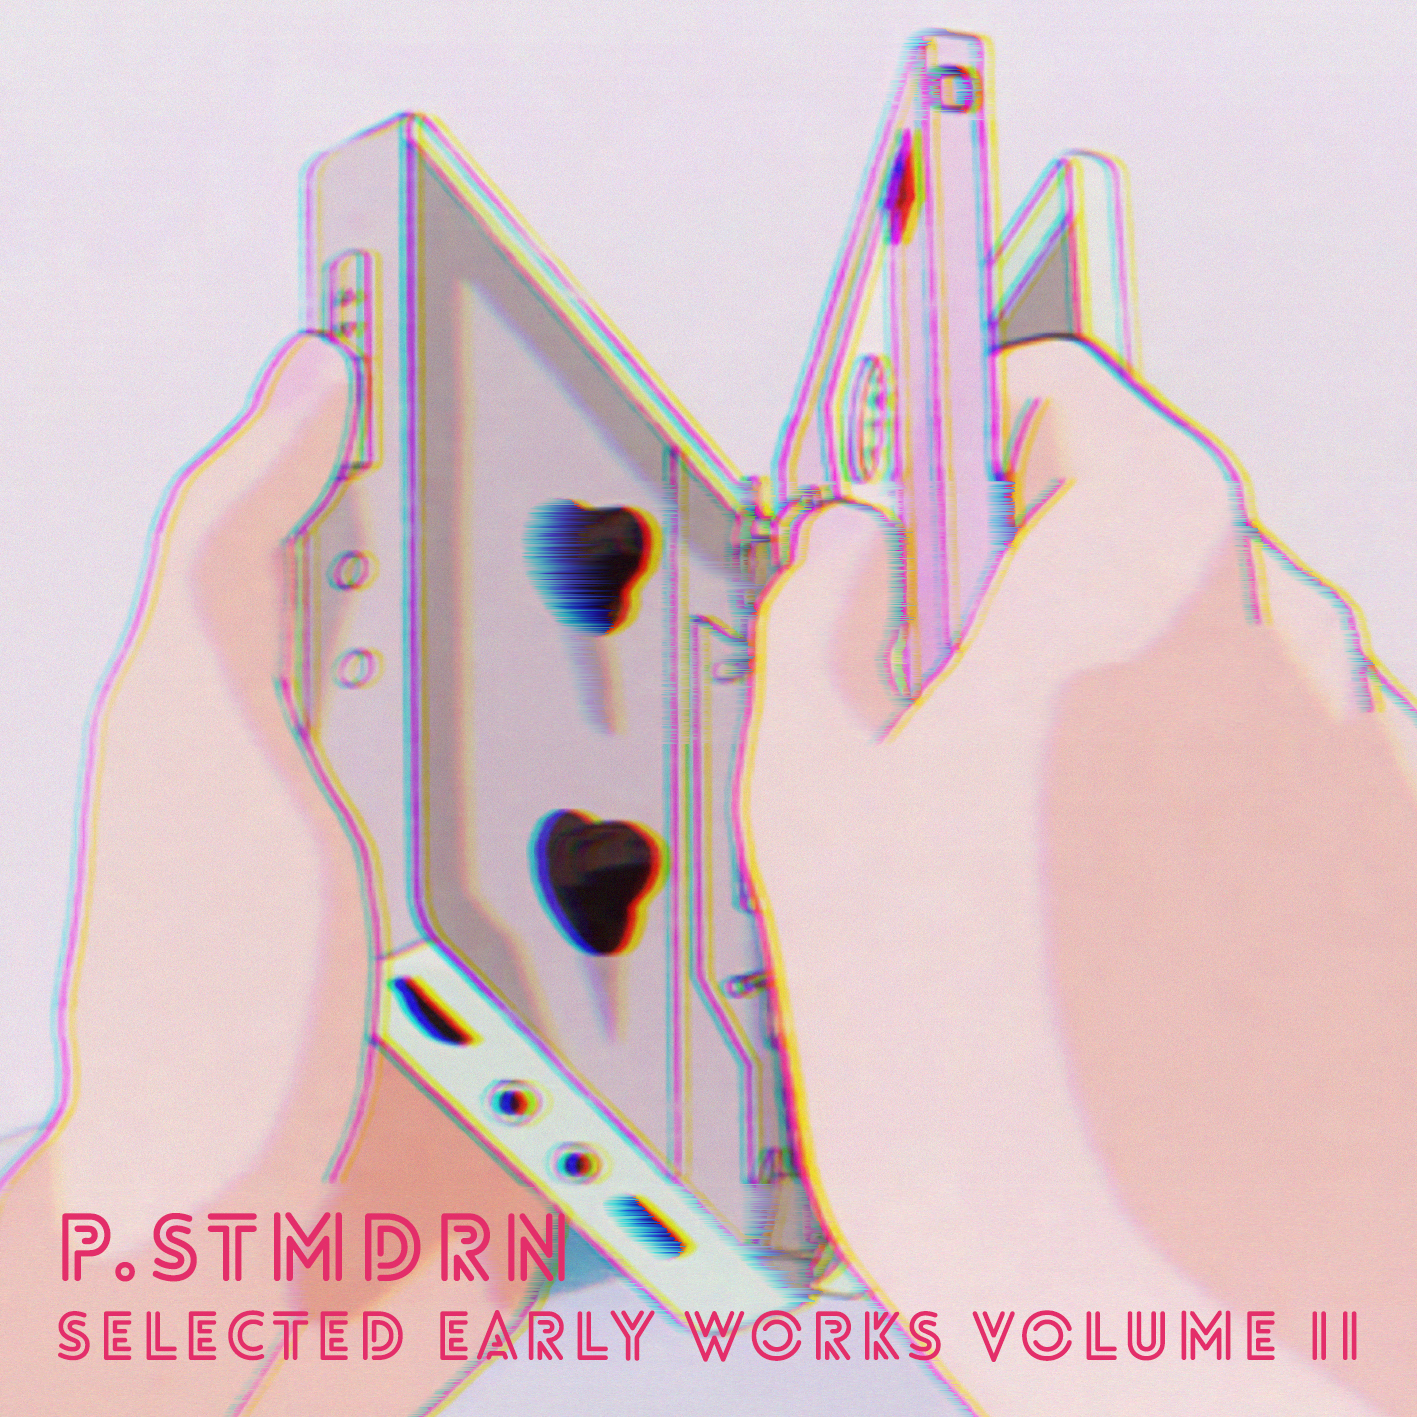 p.stmdrn – selected early works volume II